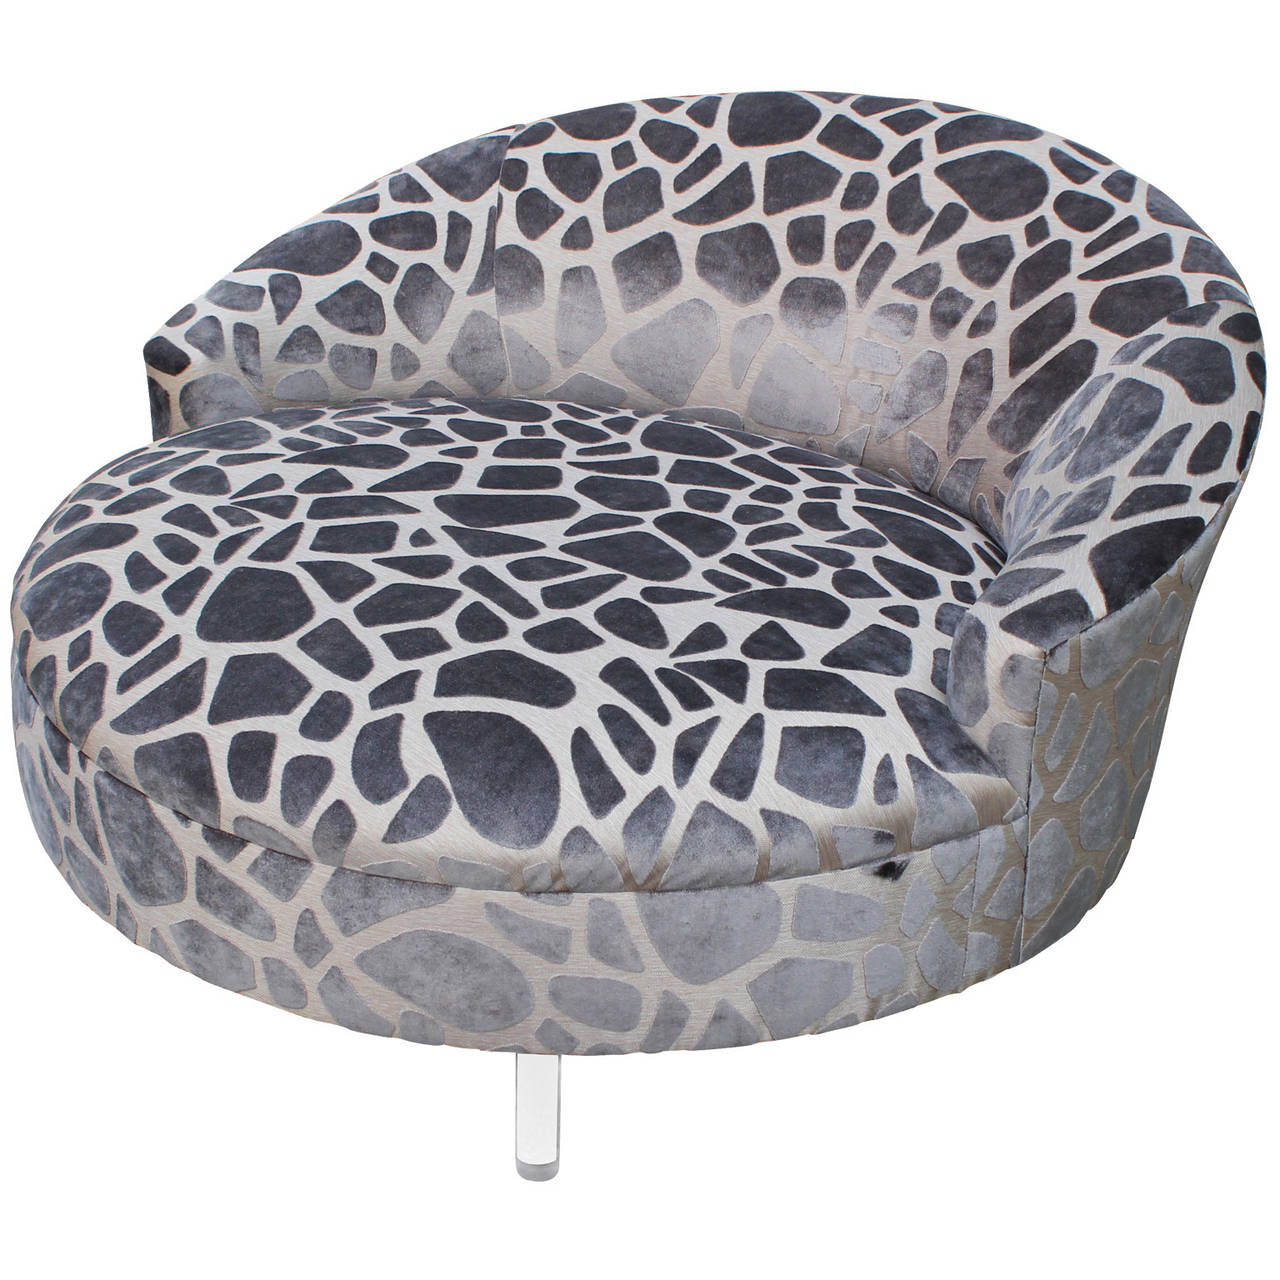 Lucite Leg Circle Lounge Chair in the Style of Harvey Probber at 1stdibs